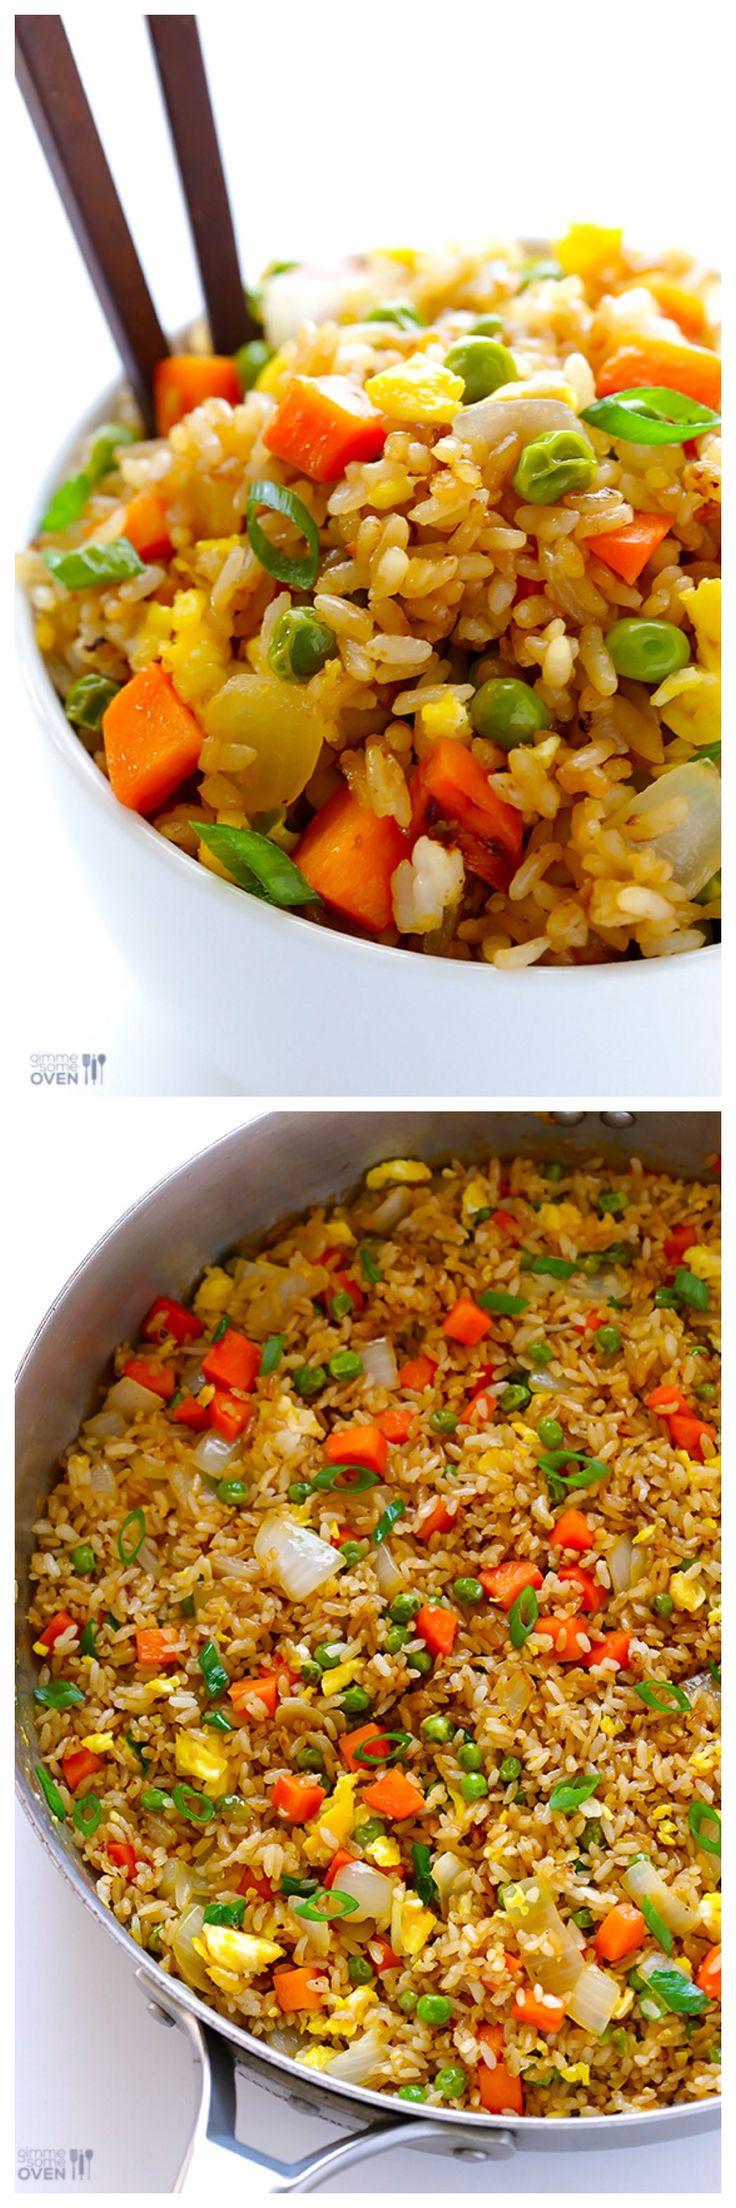 The BEST Fried Rice: better than the restaurant version, and quick and easy to make homemade too | gimmesomeoven.com